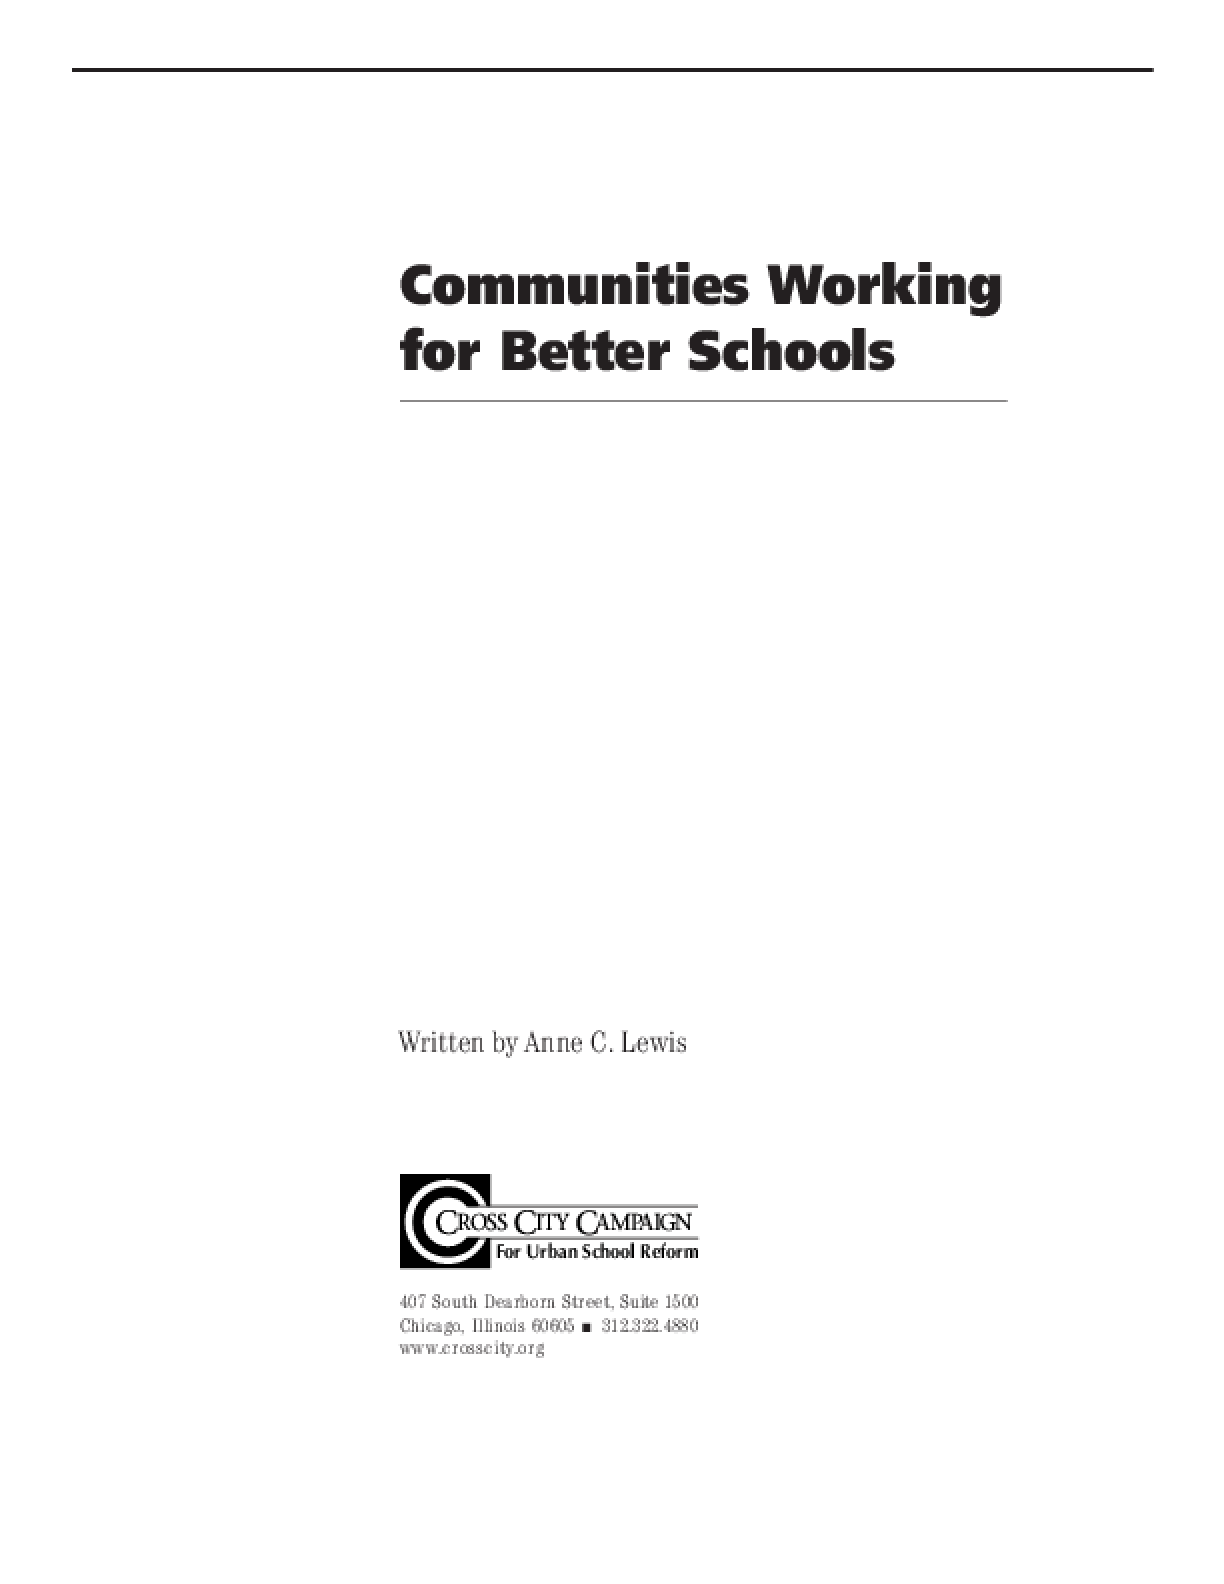 Communities Working for Better Schools